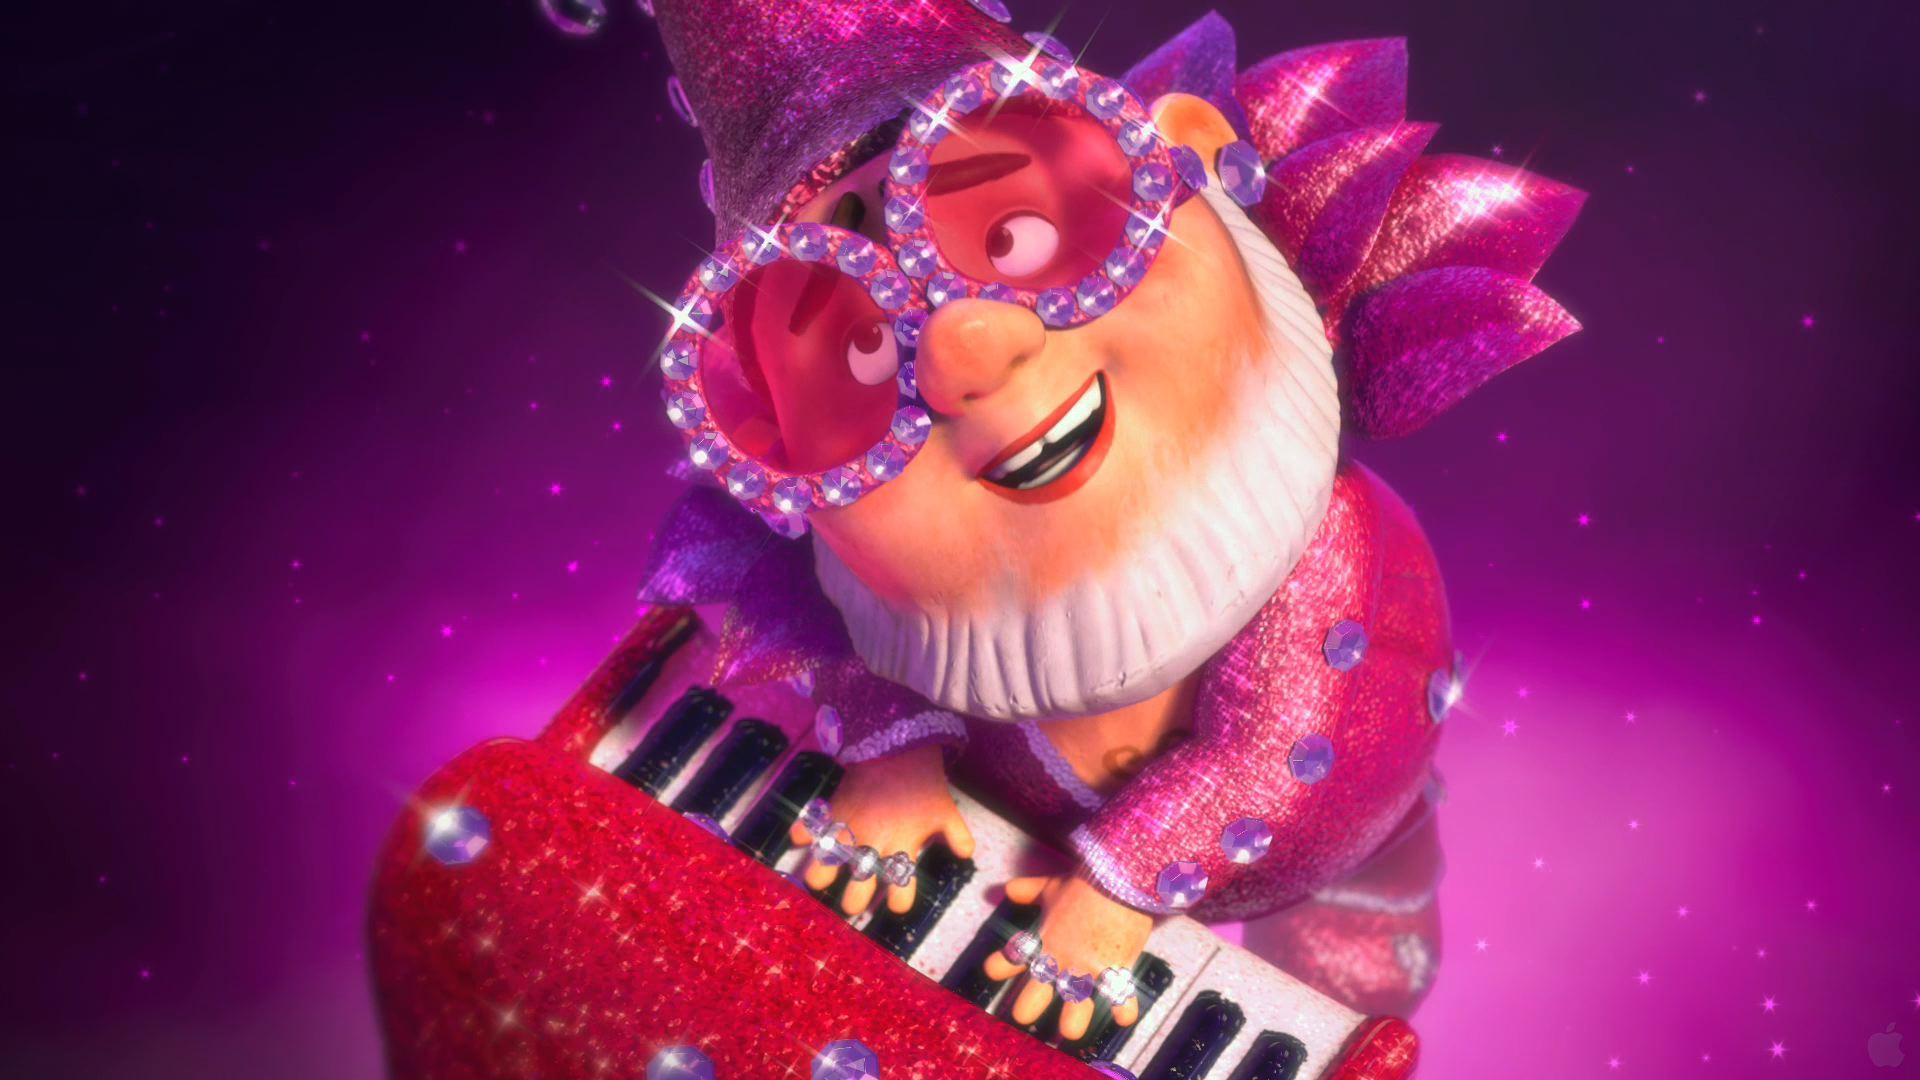 Elton John Lawn Gnome from Gnomeo and Juliet Desktop Wallpaper 1920x1080